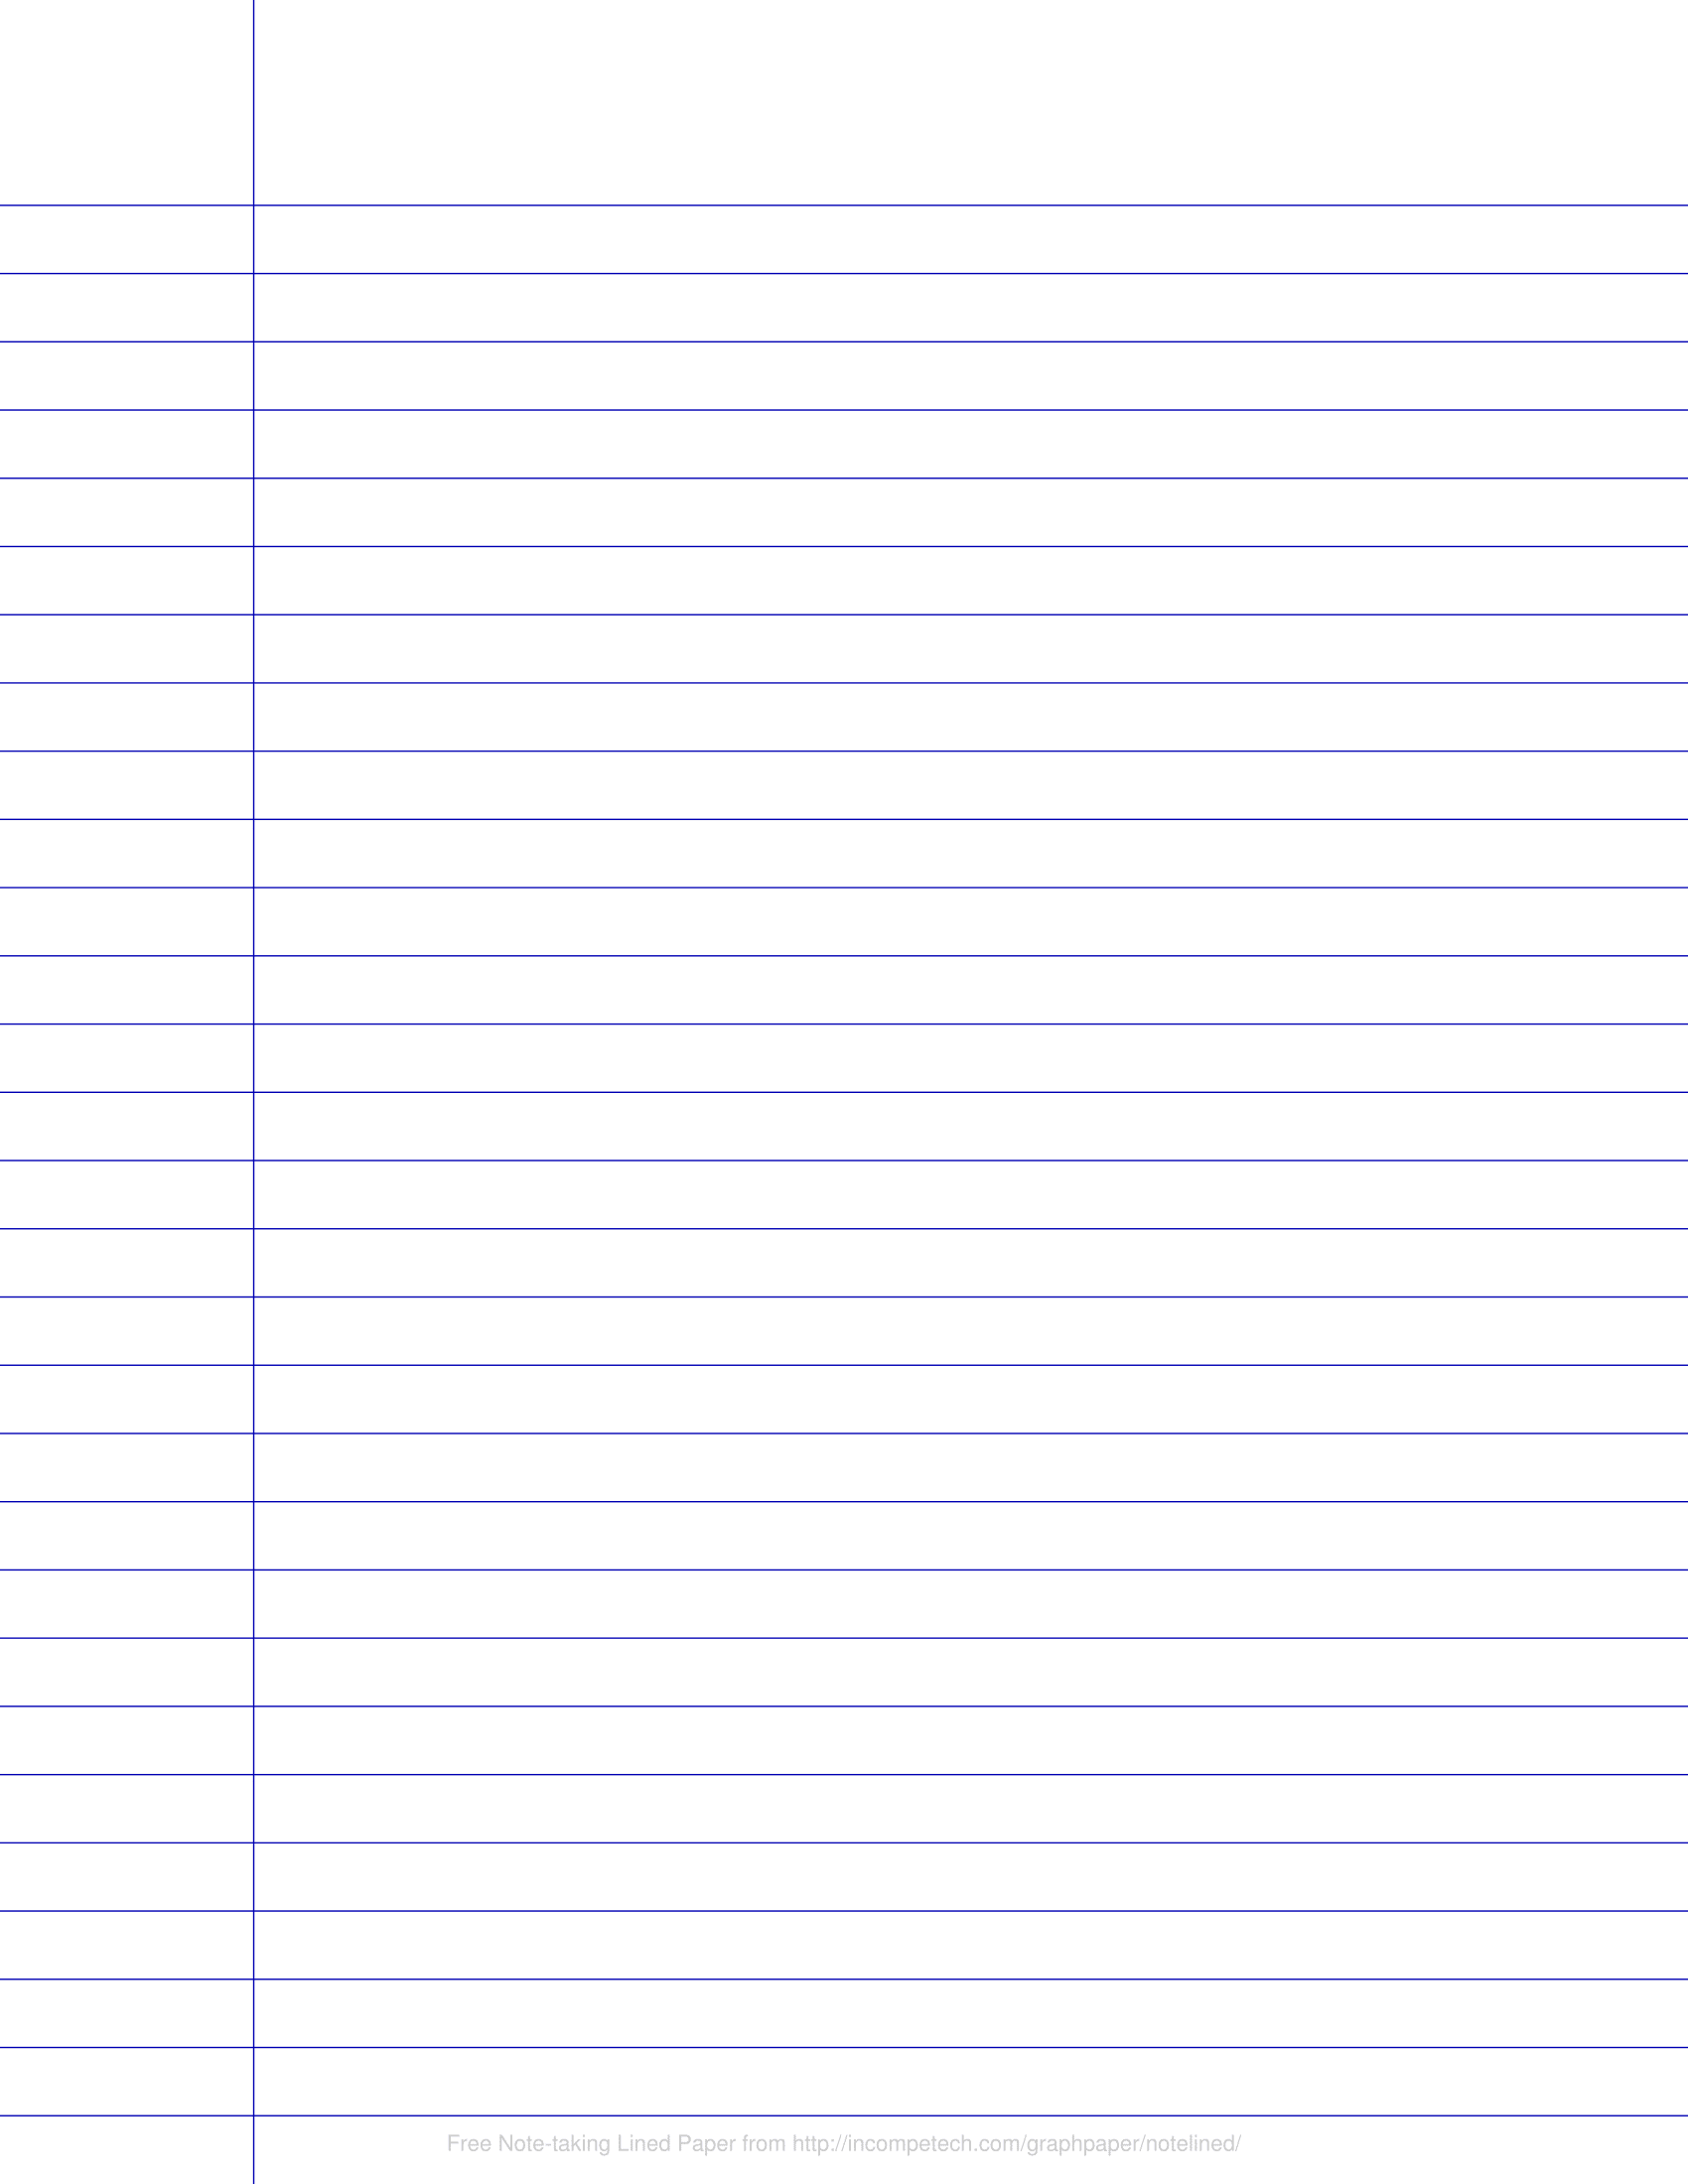 free online graph paper    notebook paper